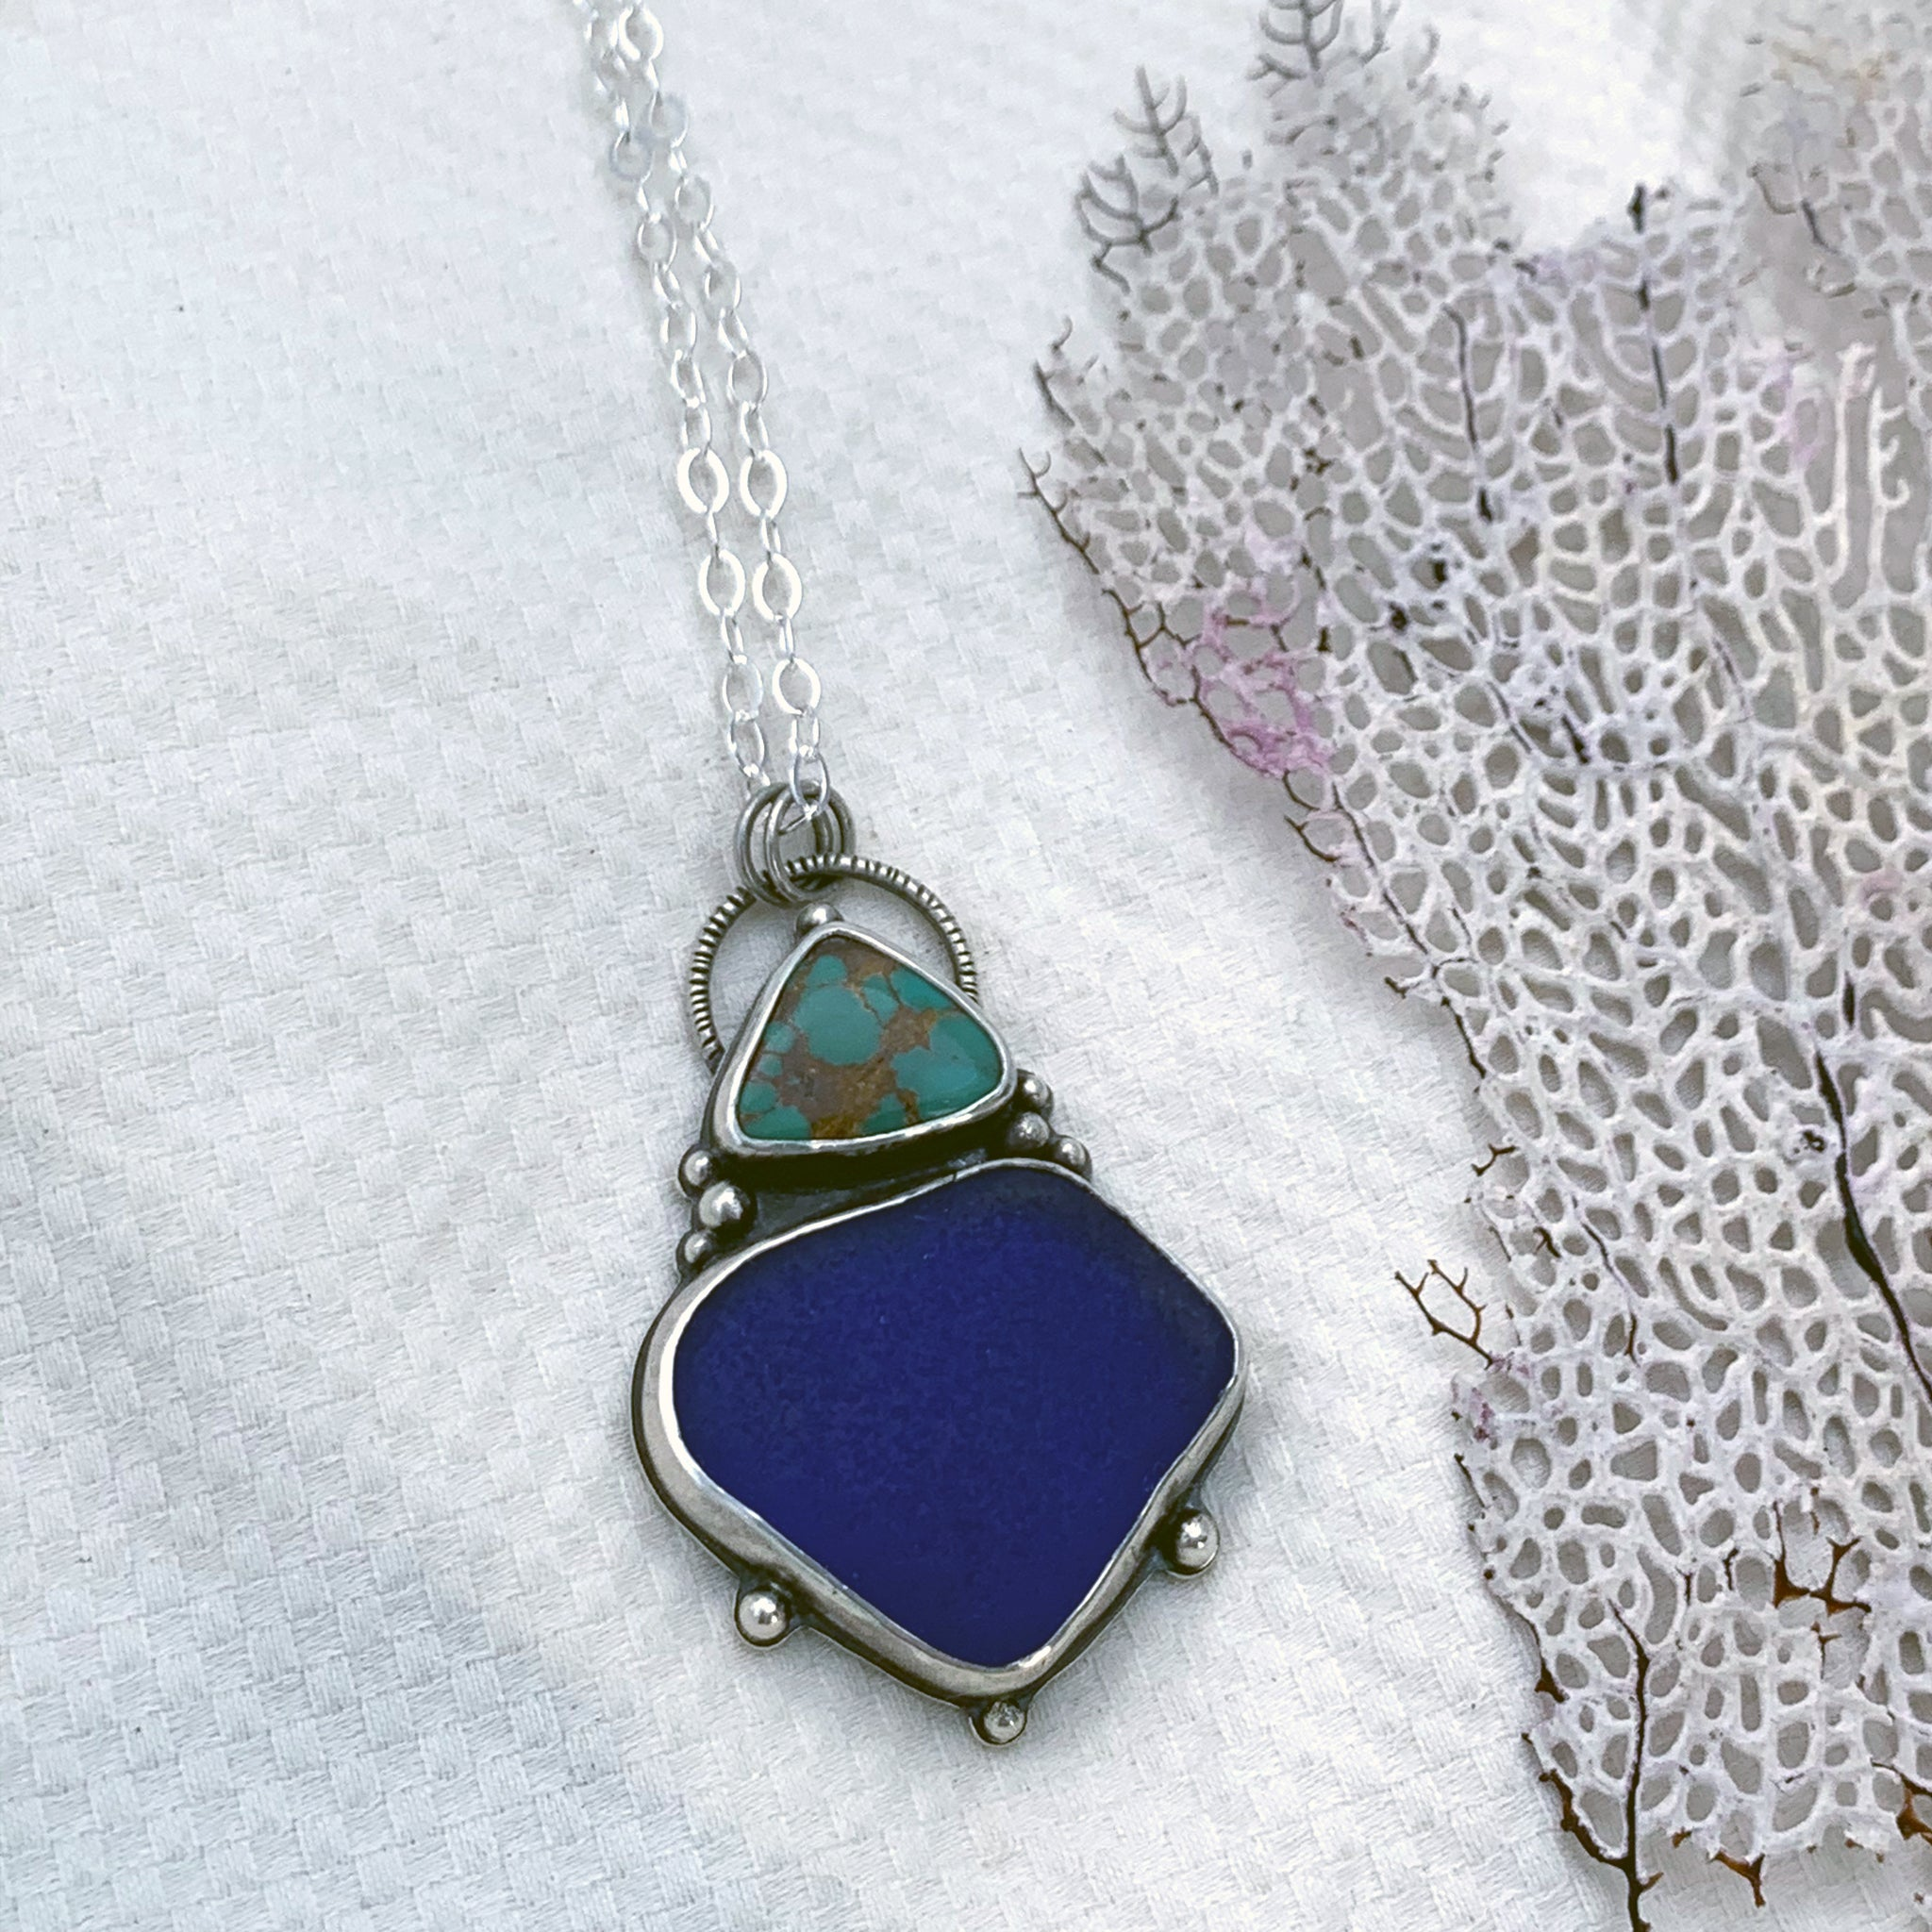 Depths Pendant with Turquoise + Very Rare Seaglass